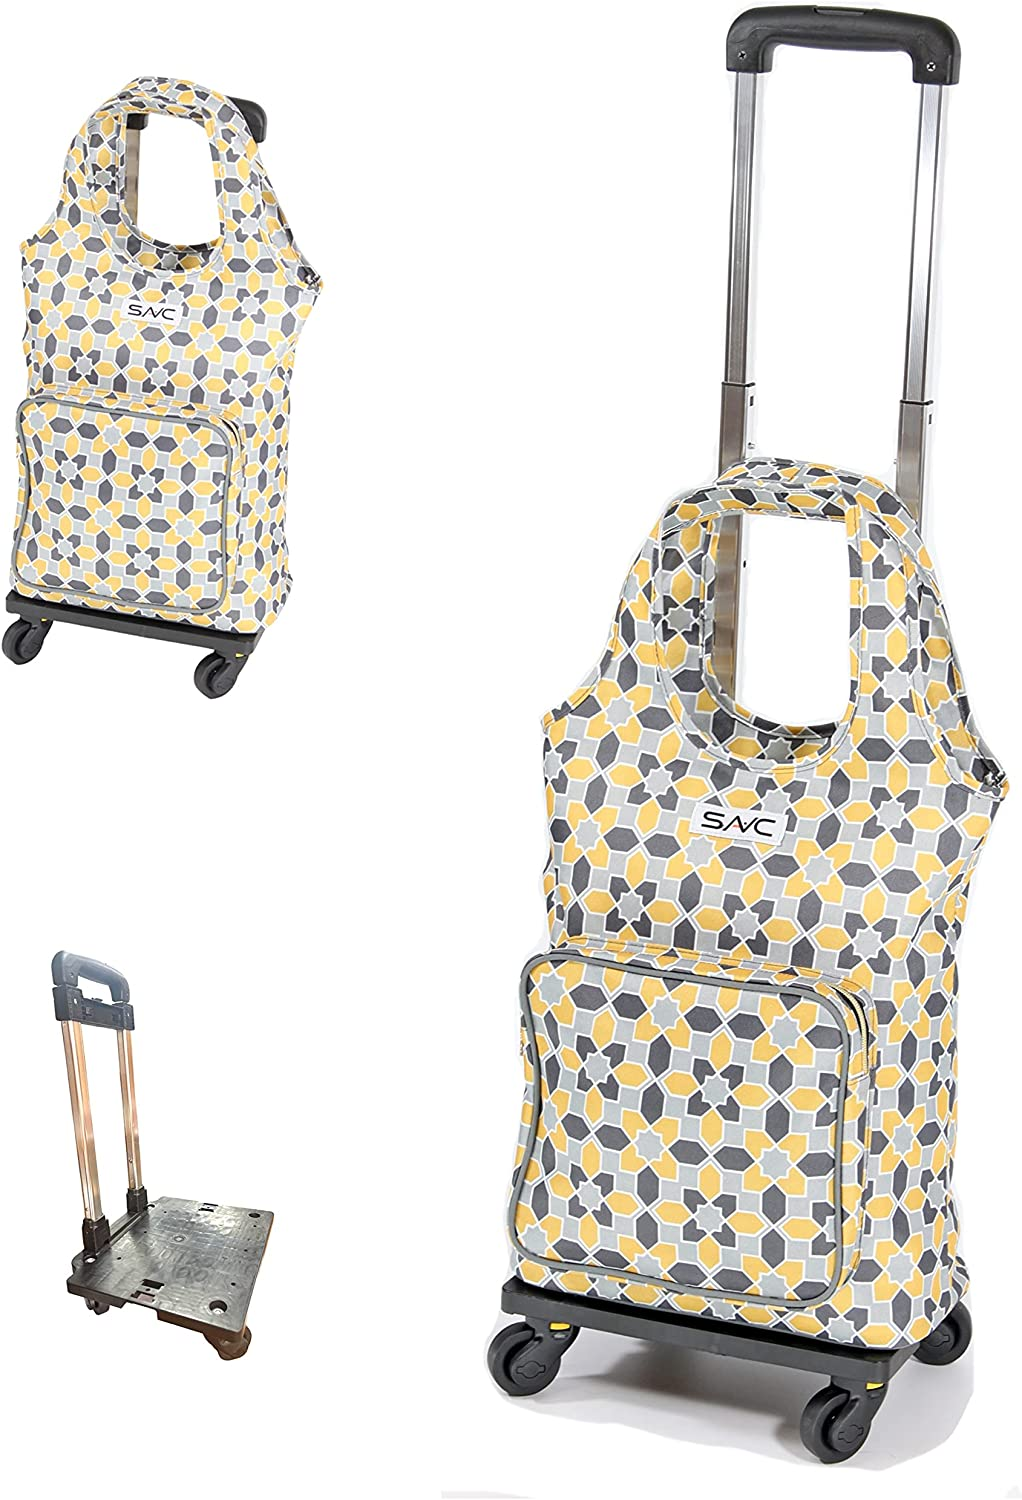 SAVC insulated shopping bag with wheels for Groceries & Food Delivery, Eco Friendly Heavy Duty & Sturdy Zippered. Good for BBQ/Outdoors/Party/Picnic/Shopping/Supermarket.